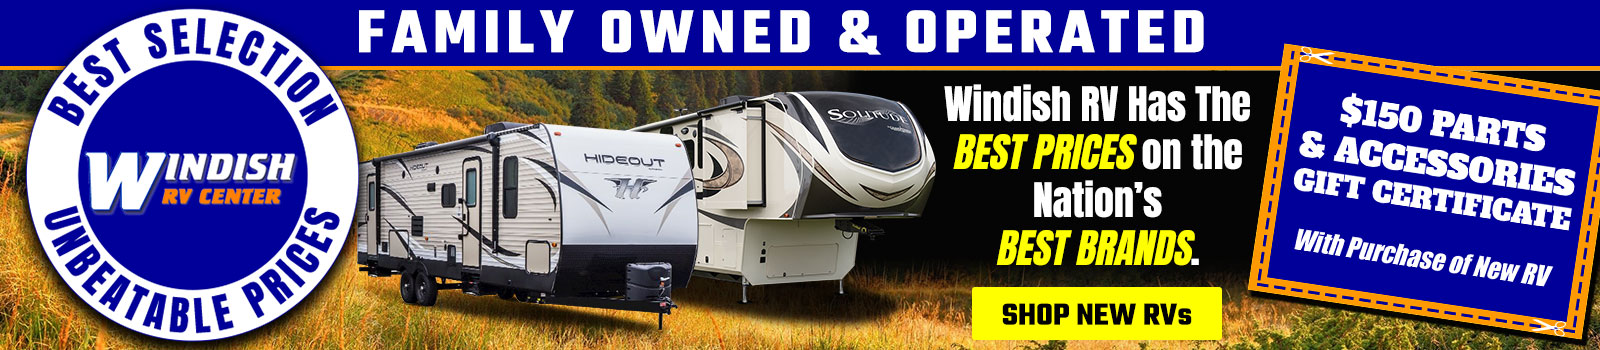 Home | Windish RV Center